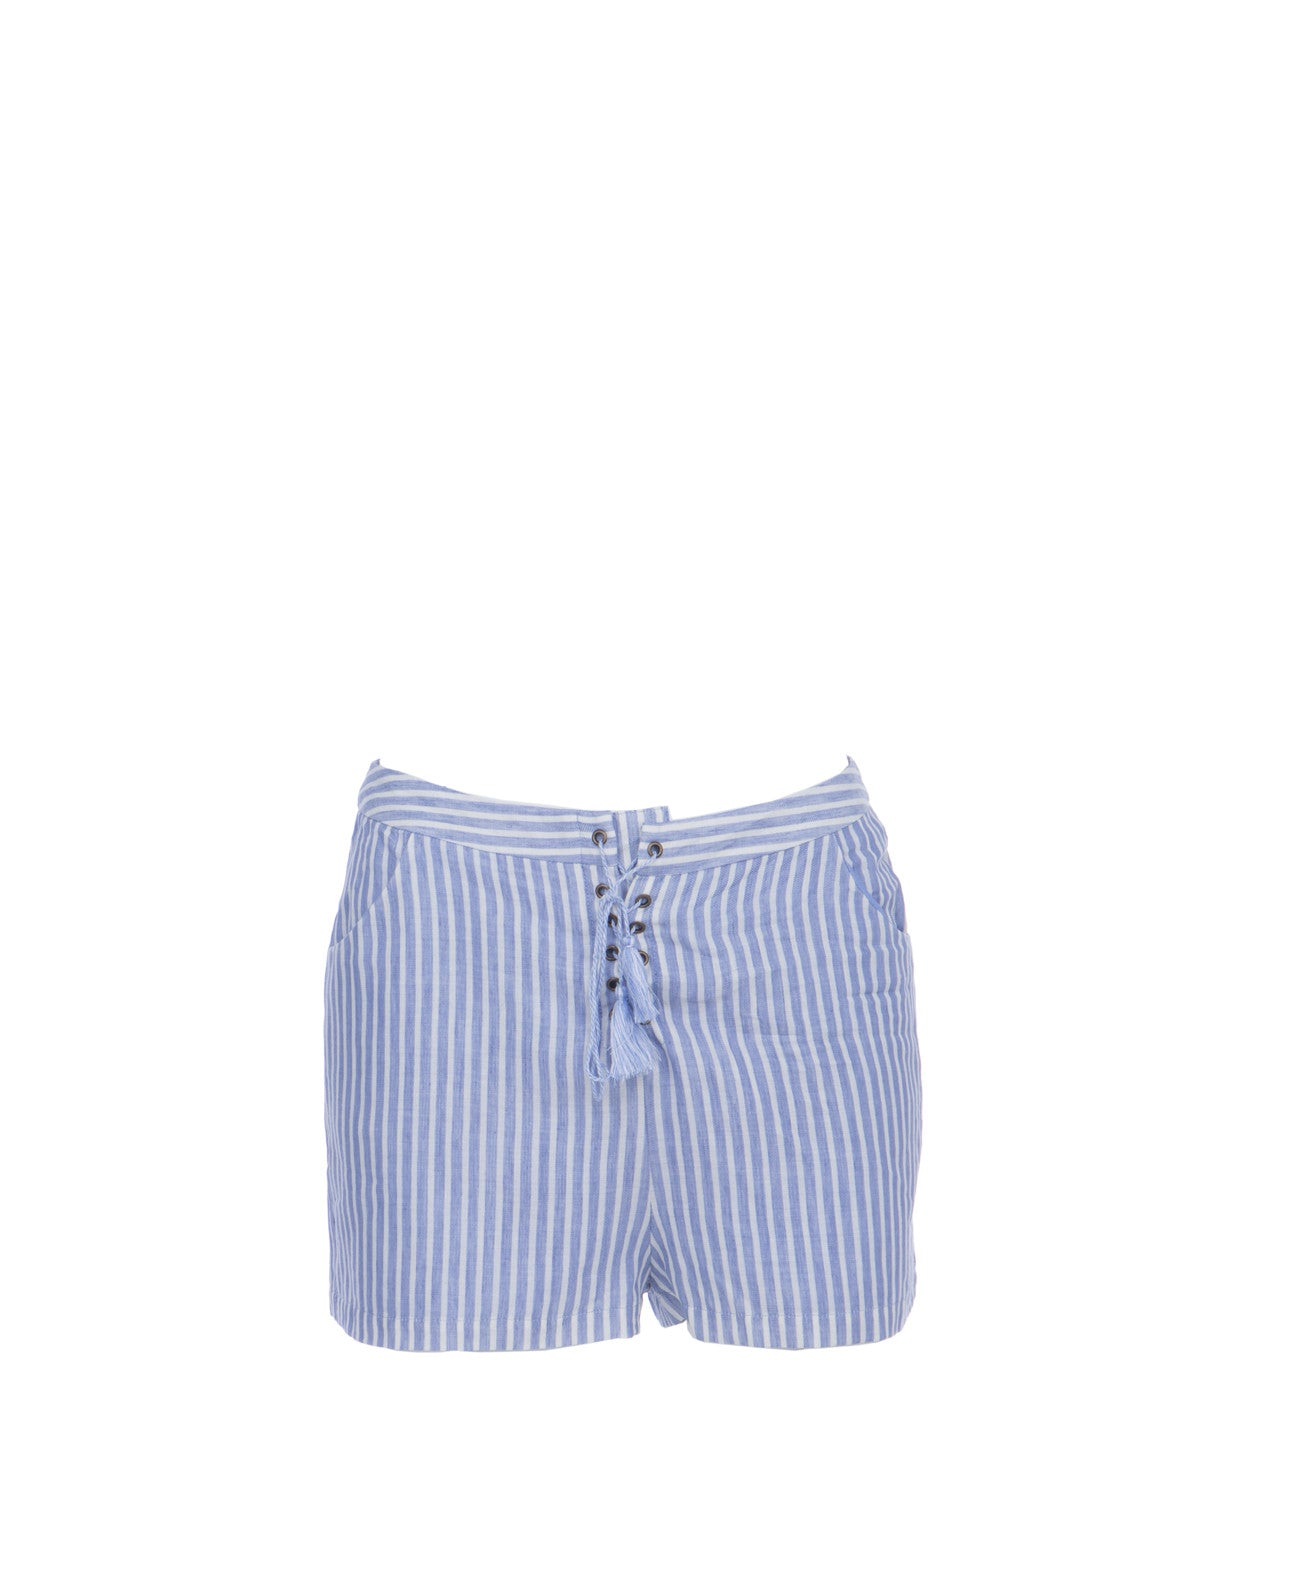 Haven_Short Striped Lace Up Shorts